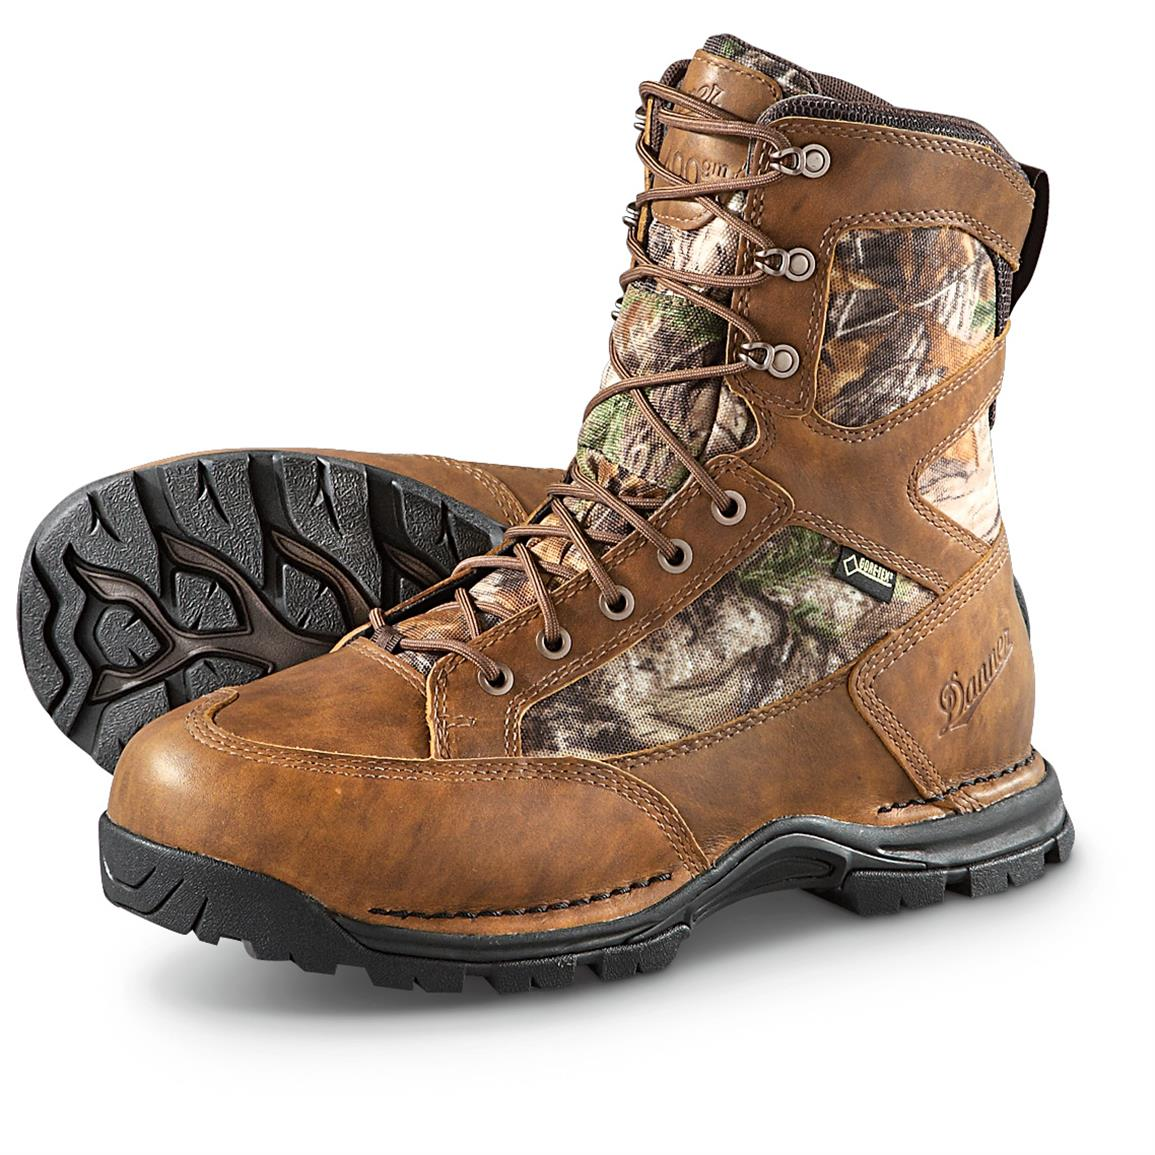 Danner Pronghorn Men's Insulated Boots, 400 Gram, Realtree Xtra ...